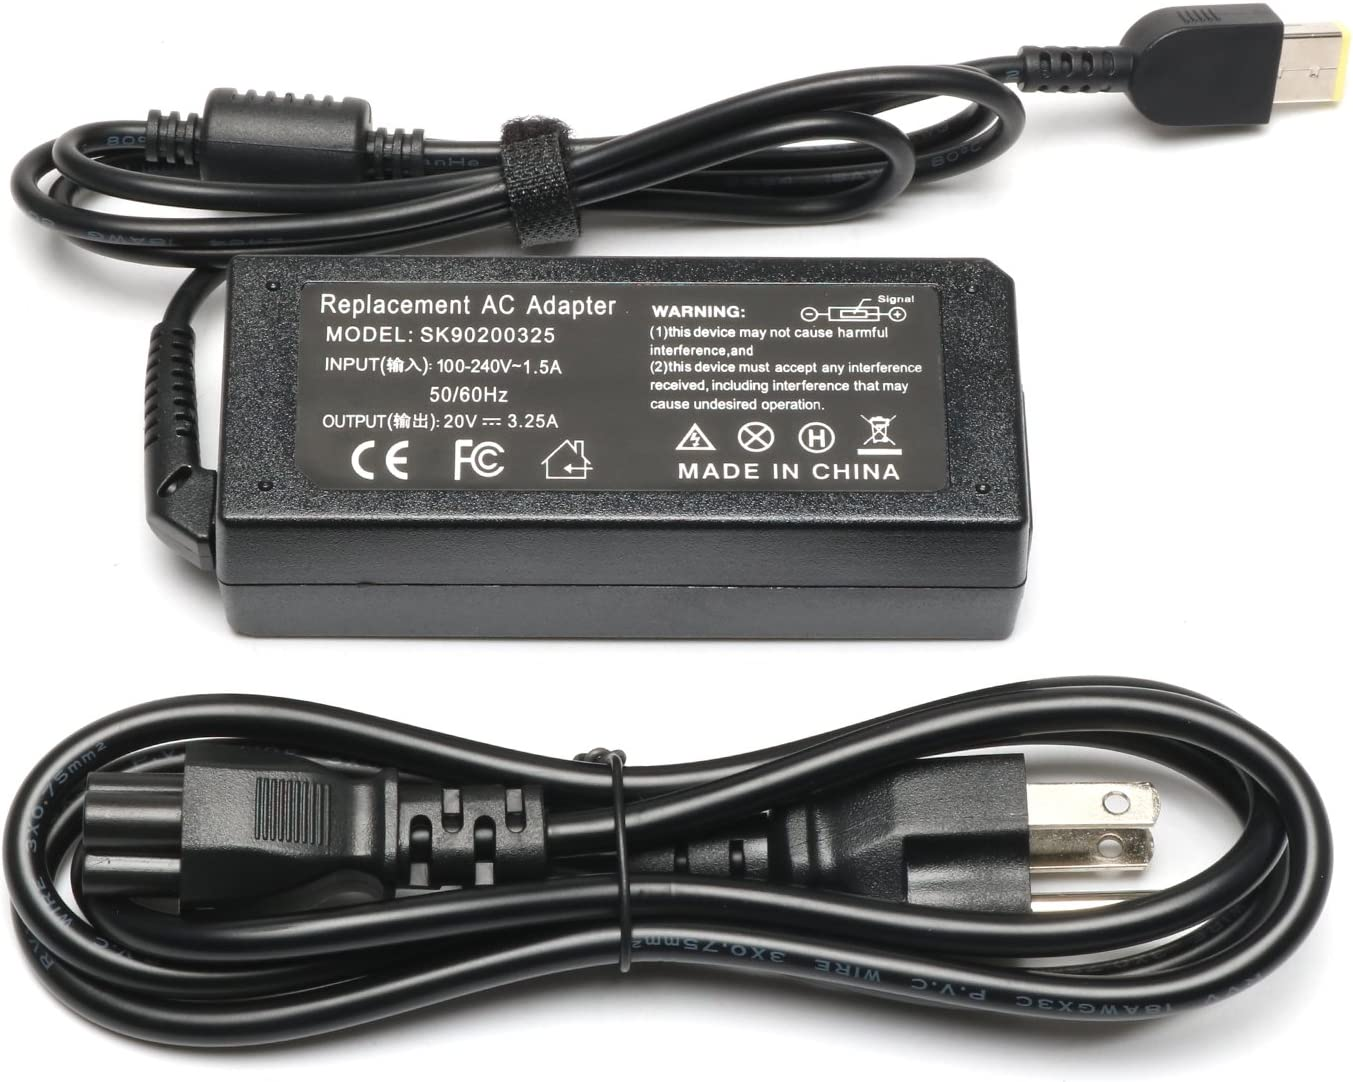 20V 3.25A 65W USB Laptop Charger for Lenovo ThinkPad X1 X270 X240 X240S X250 T470 T450S T440 T440S T460S T460 T450 T440P T540P T470S T431S T560 T570 T550 E570 E560 E550 E540 G50-45 G50-80 Power Supply